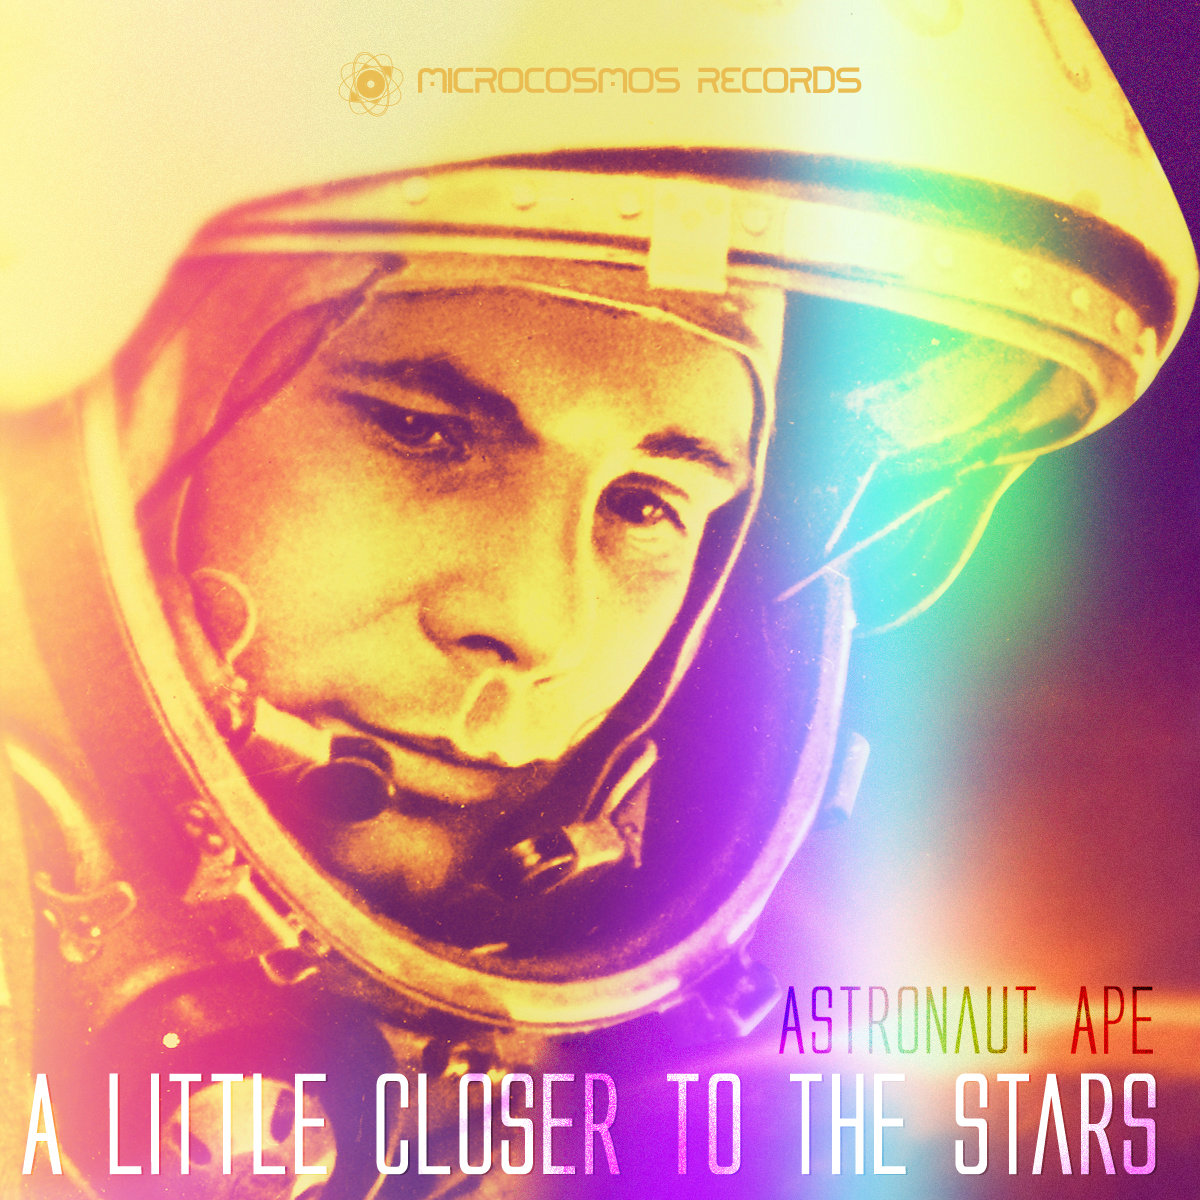 Astronaut Ape - Sputnik @ 'A Little Closer To The Stars' album (ambient, chill-out)